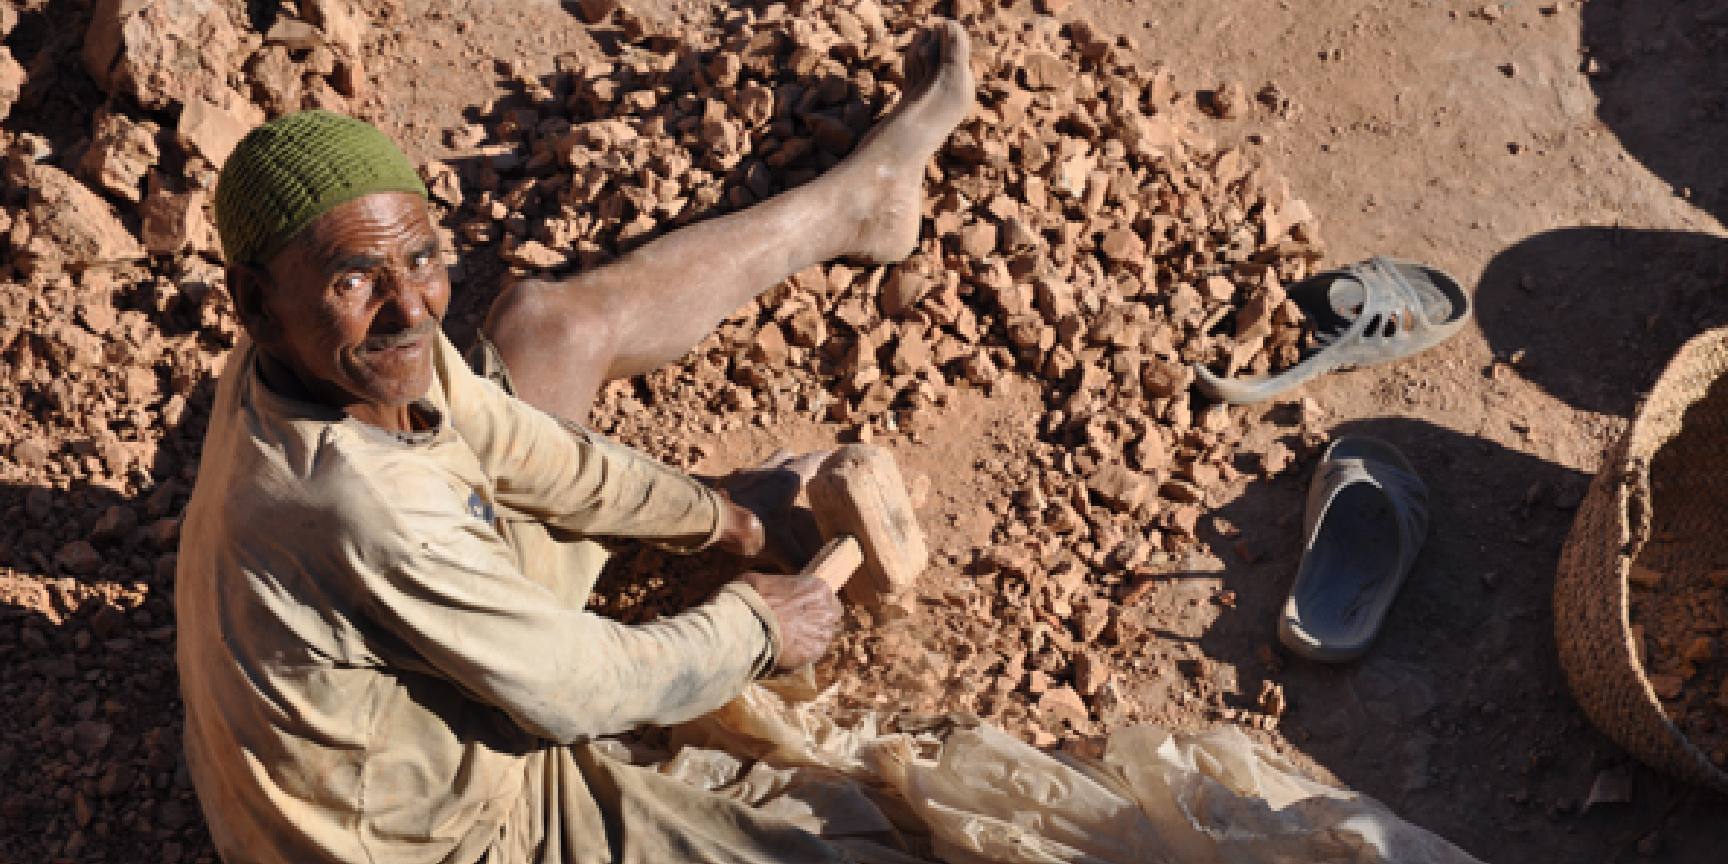 A North African man breaks up rocks with a mallet